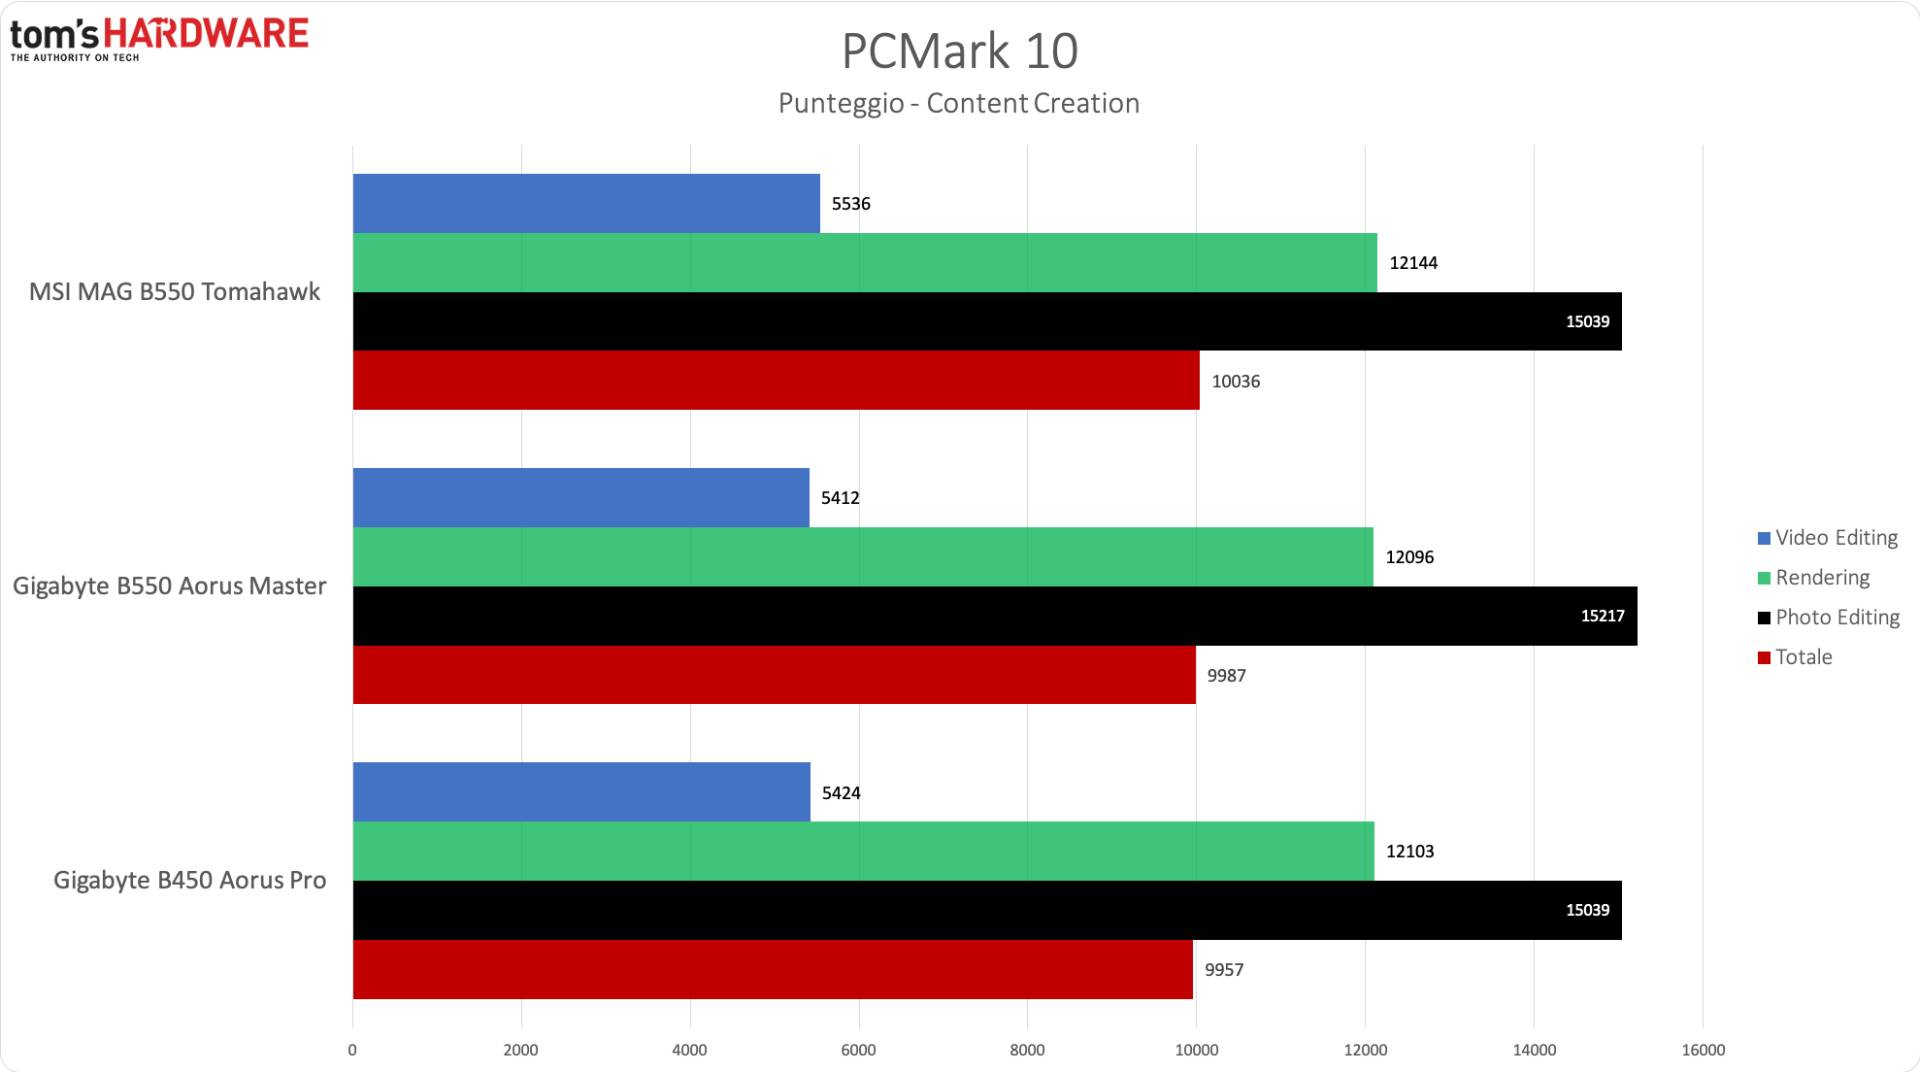 AMD B550 - PCMark 10 Content Creation